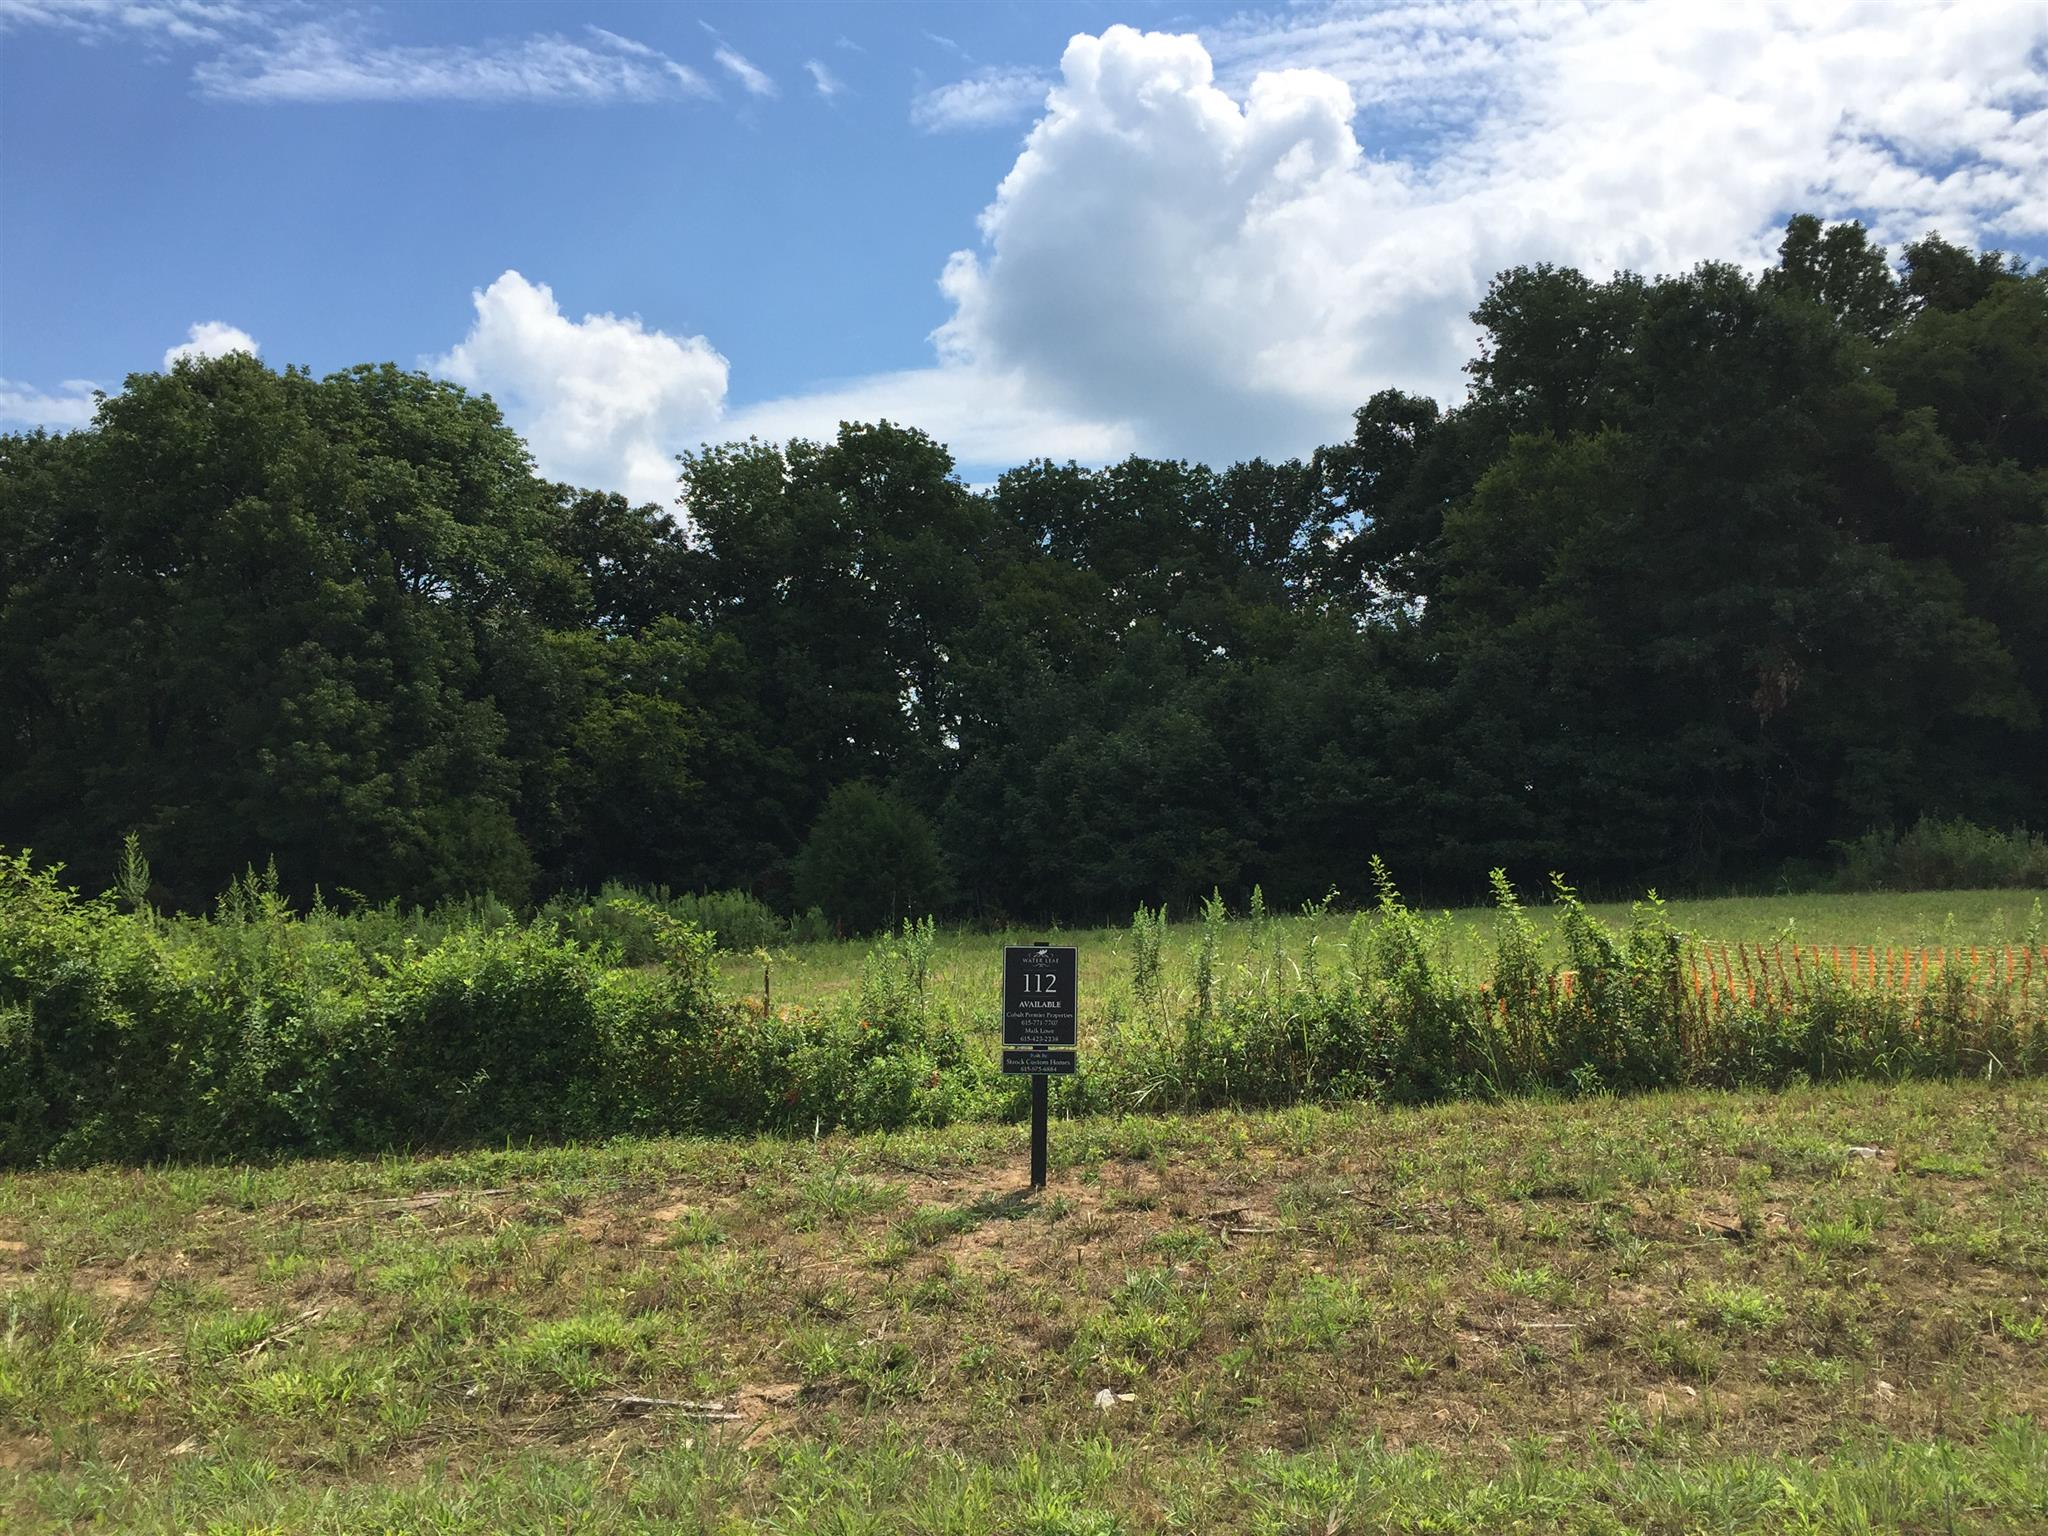 5037 Water Leaf Dr (Lot 112), Franklin, TN 37064 - Franklin, TN real estate listing